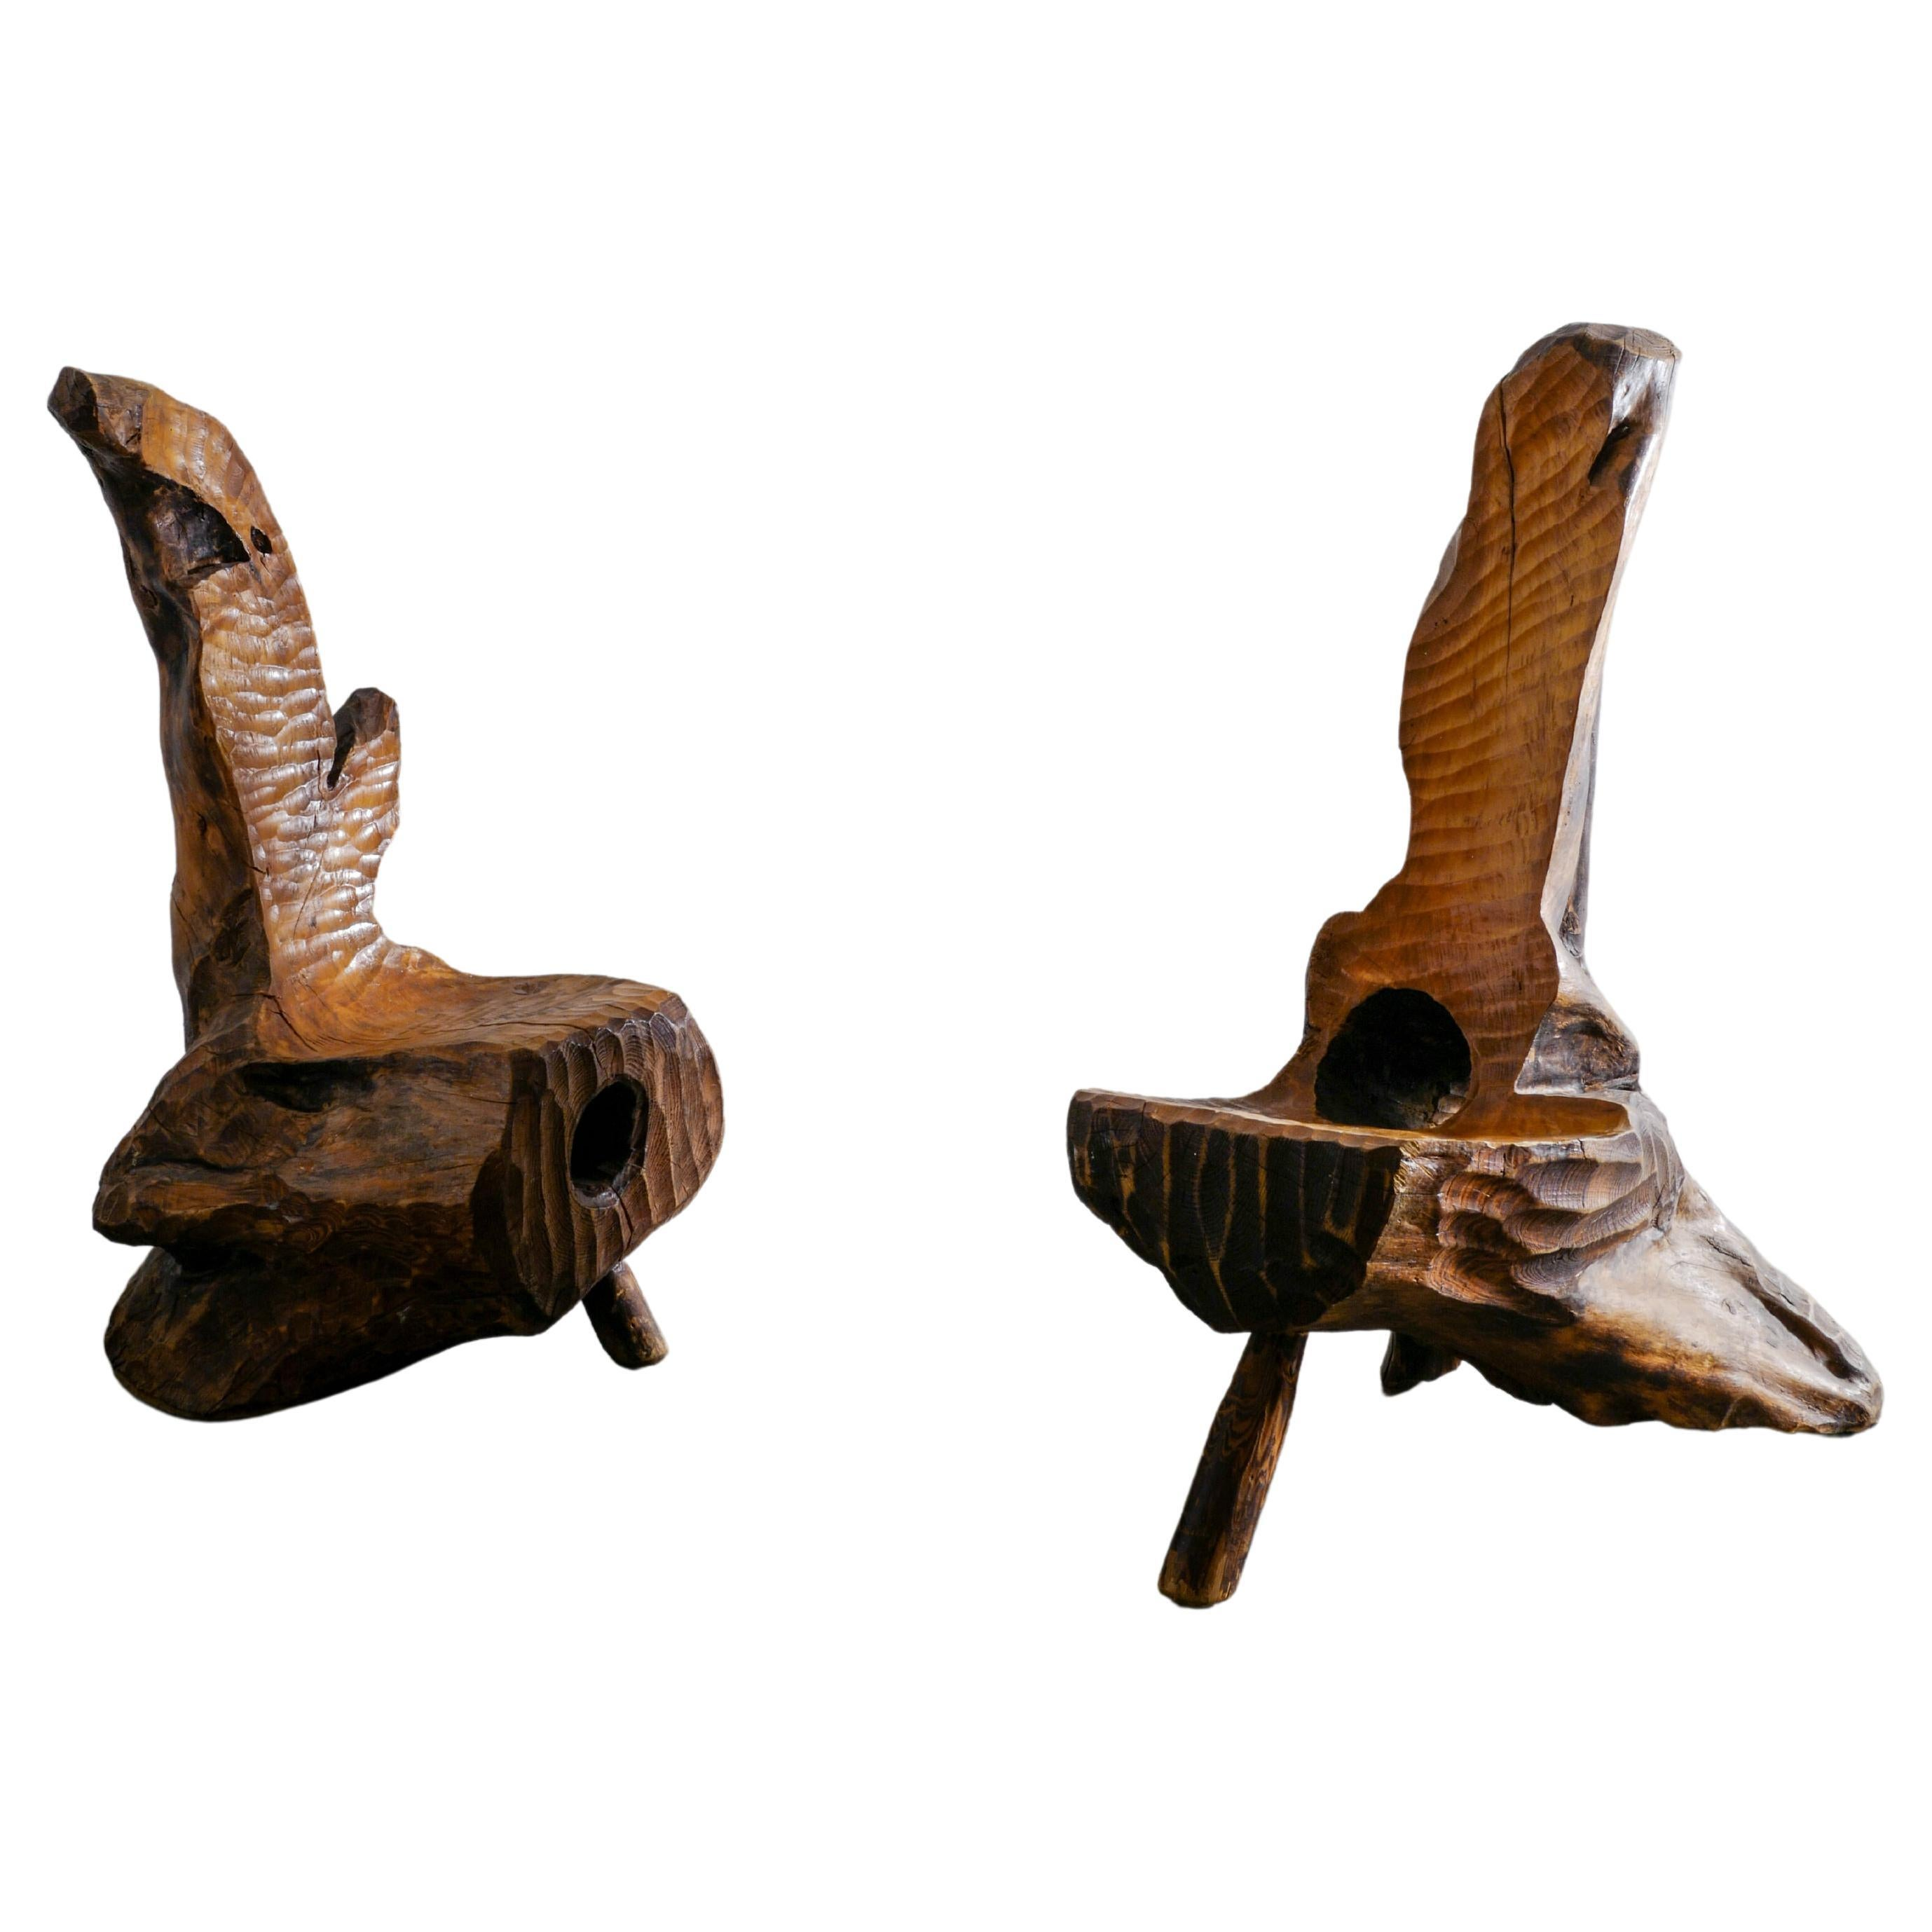 Swedish Hand Made & Sculptural Wooden Chairs in a Primitive and Wabi Sabi Style